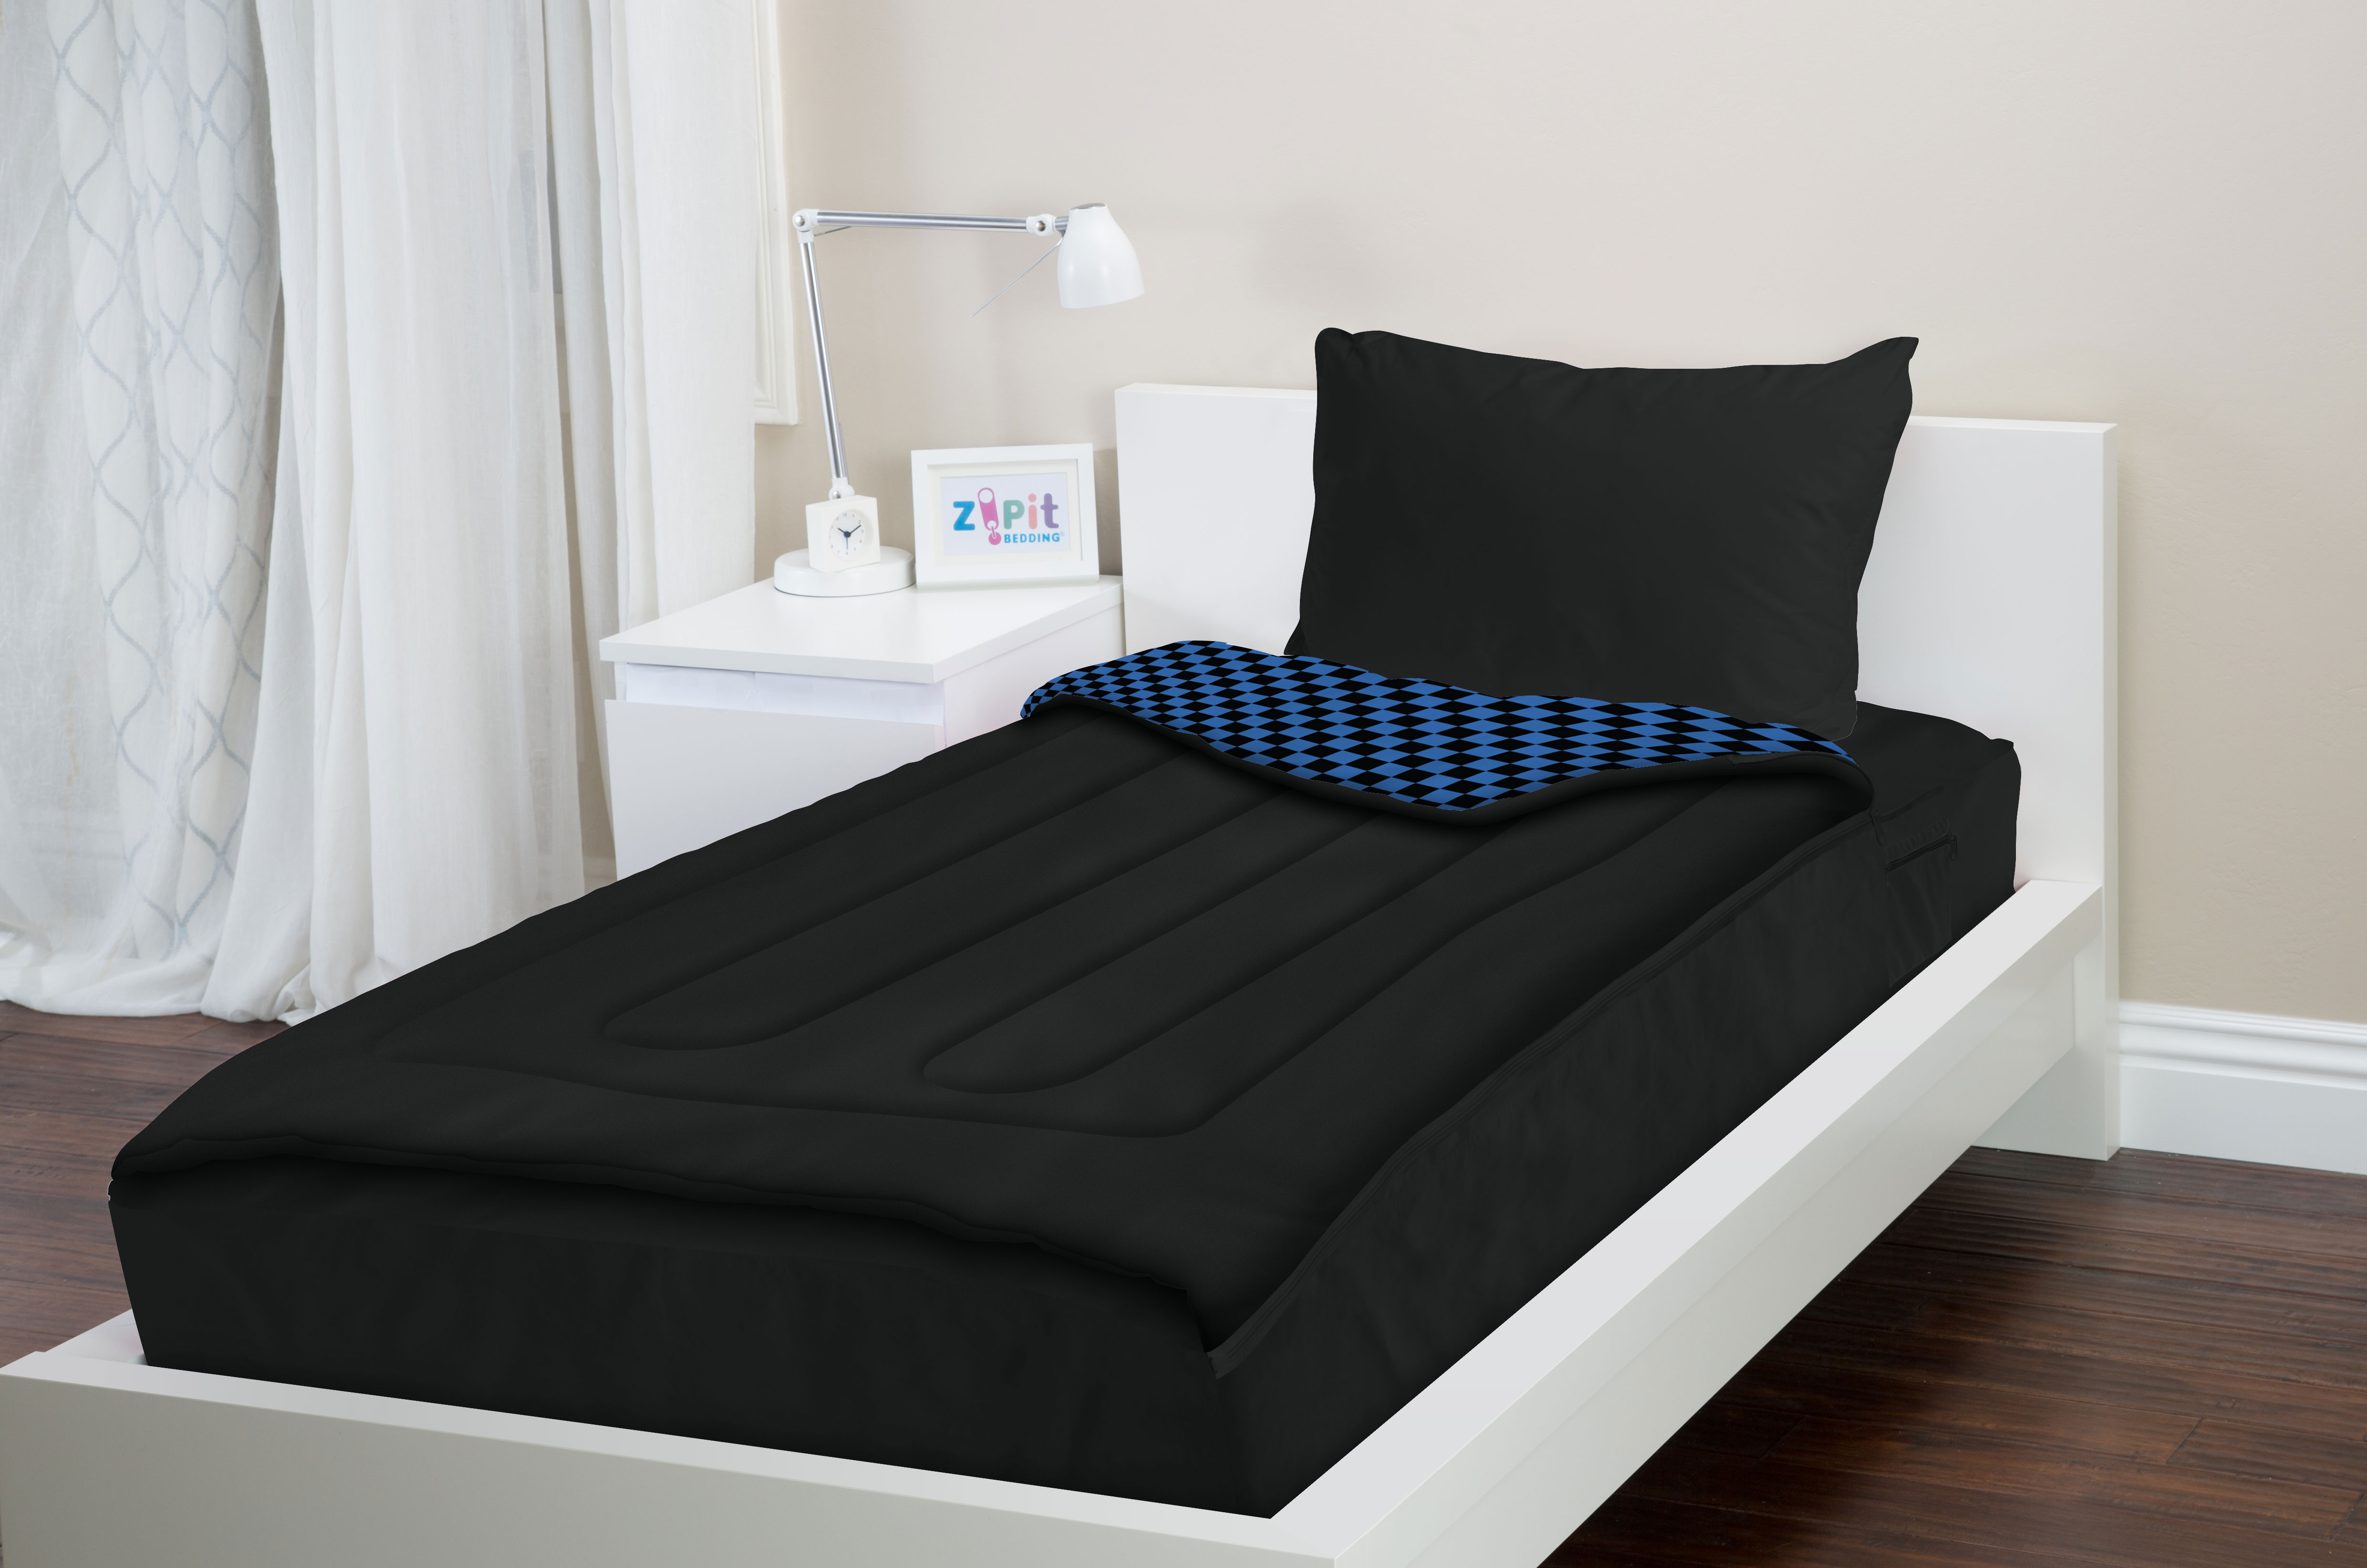 Zipit Bedding Set Zip Up Your Sheets And Comforter Like